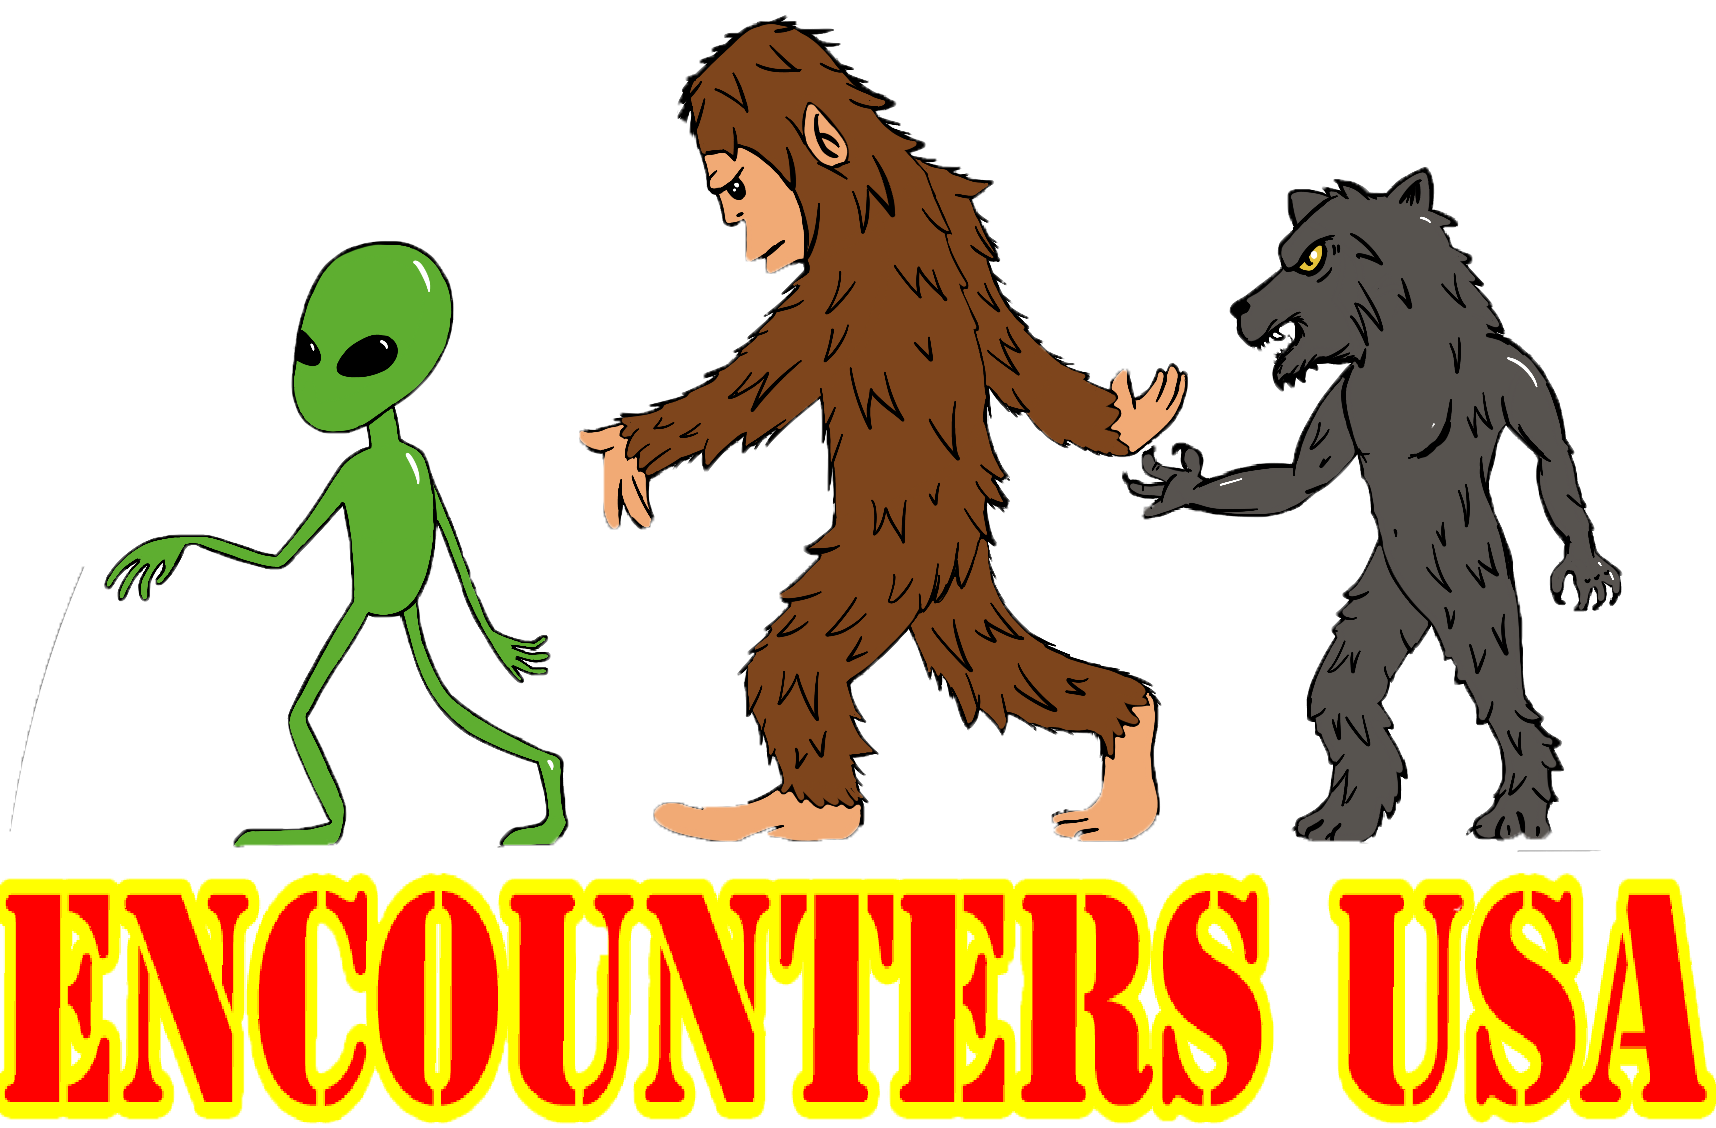 Encounters USA